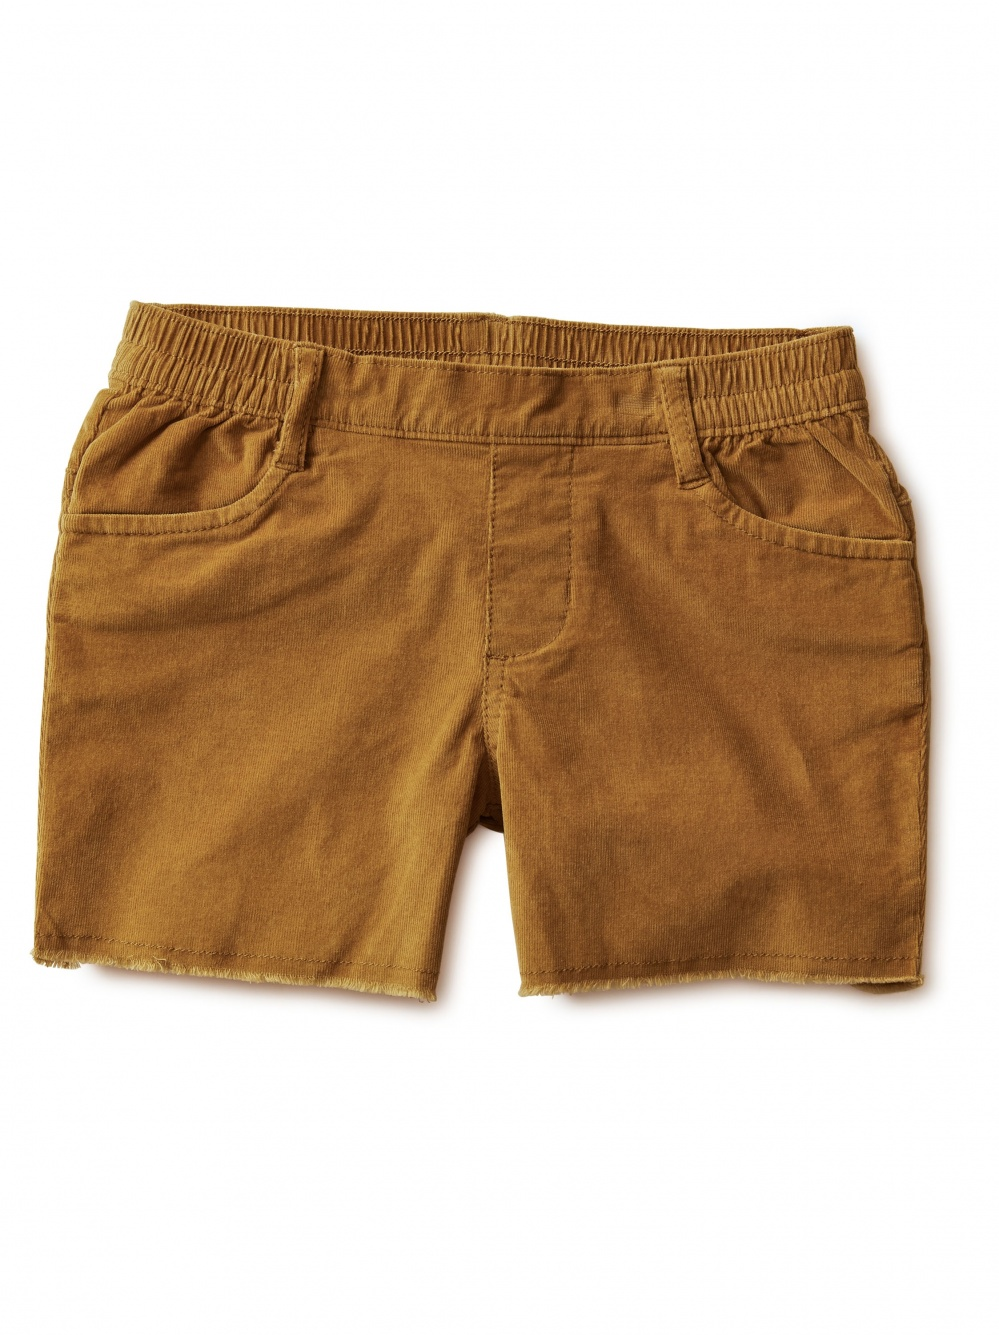 Corduroy Cut-Off Shorts